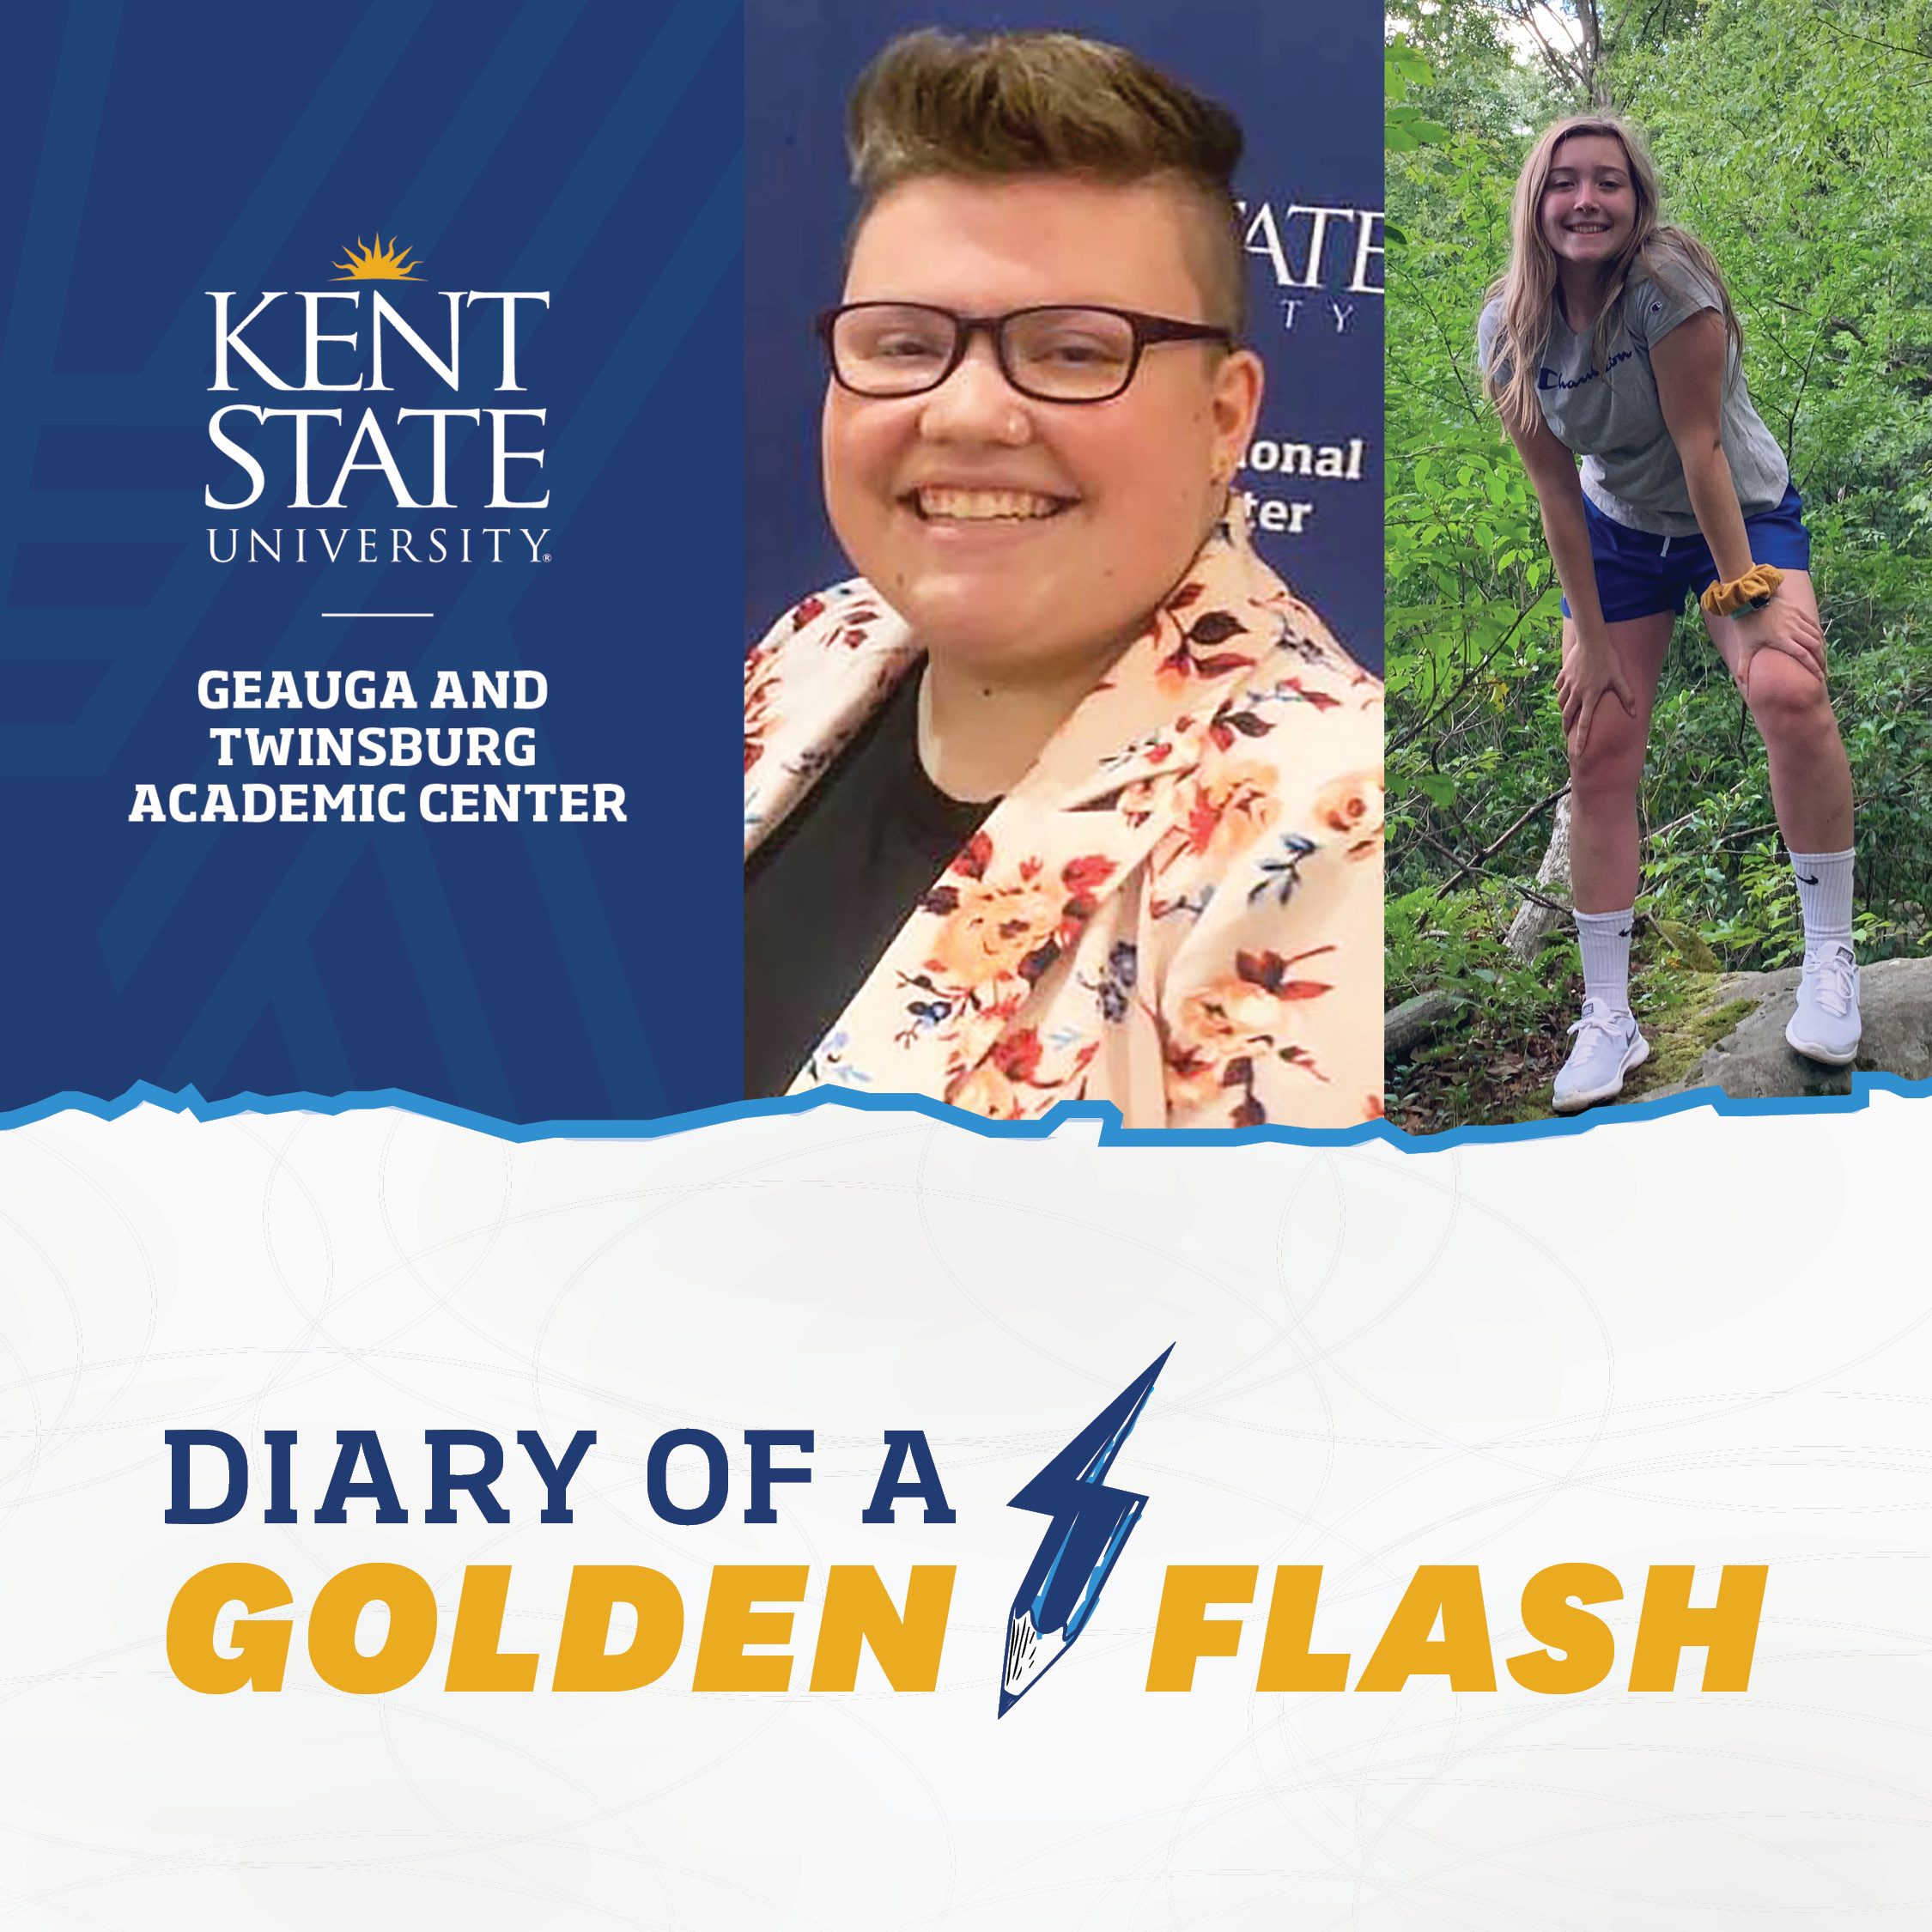 Diary of a Golden Flash featuring Anna Brent